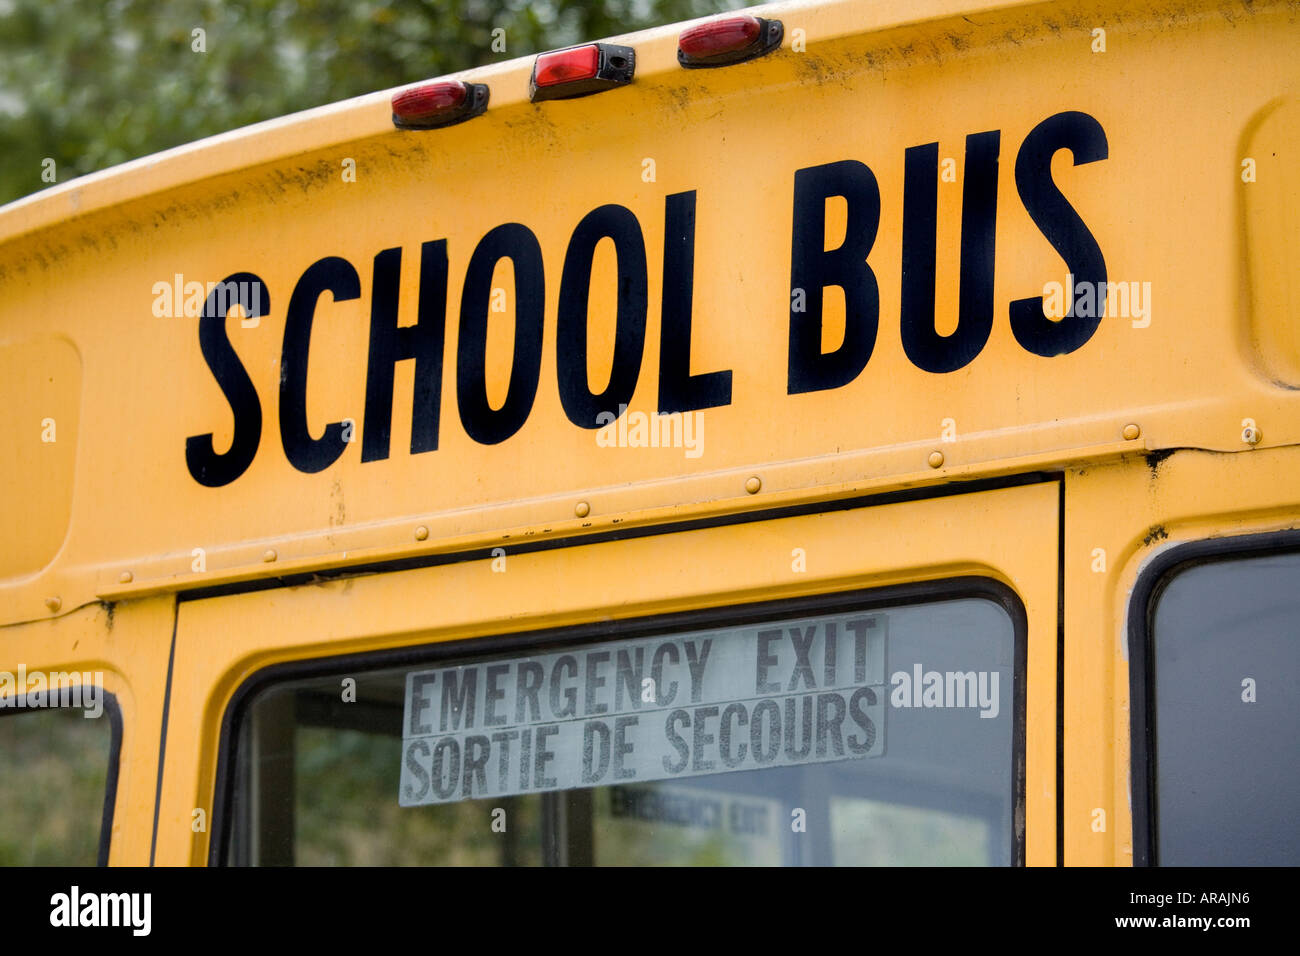 school bus and emergency exit sign on rear of vehicle